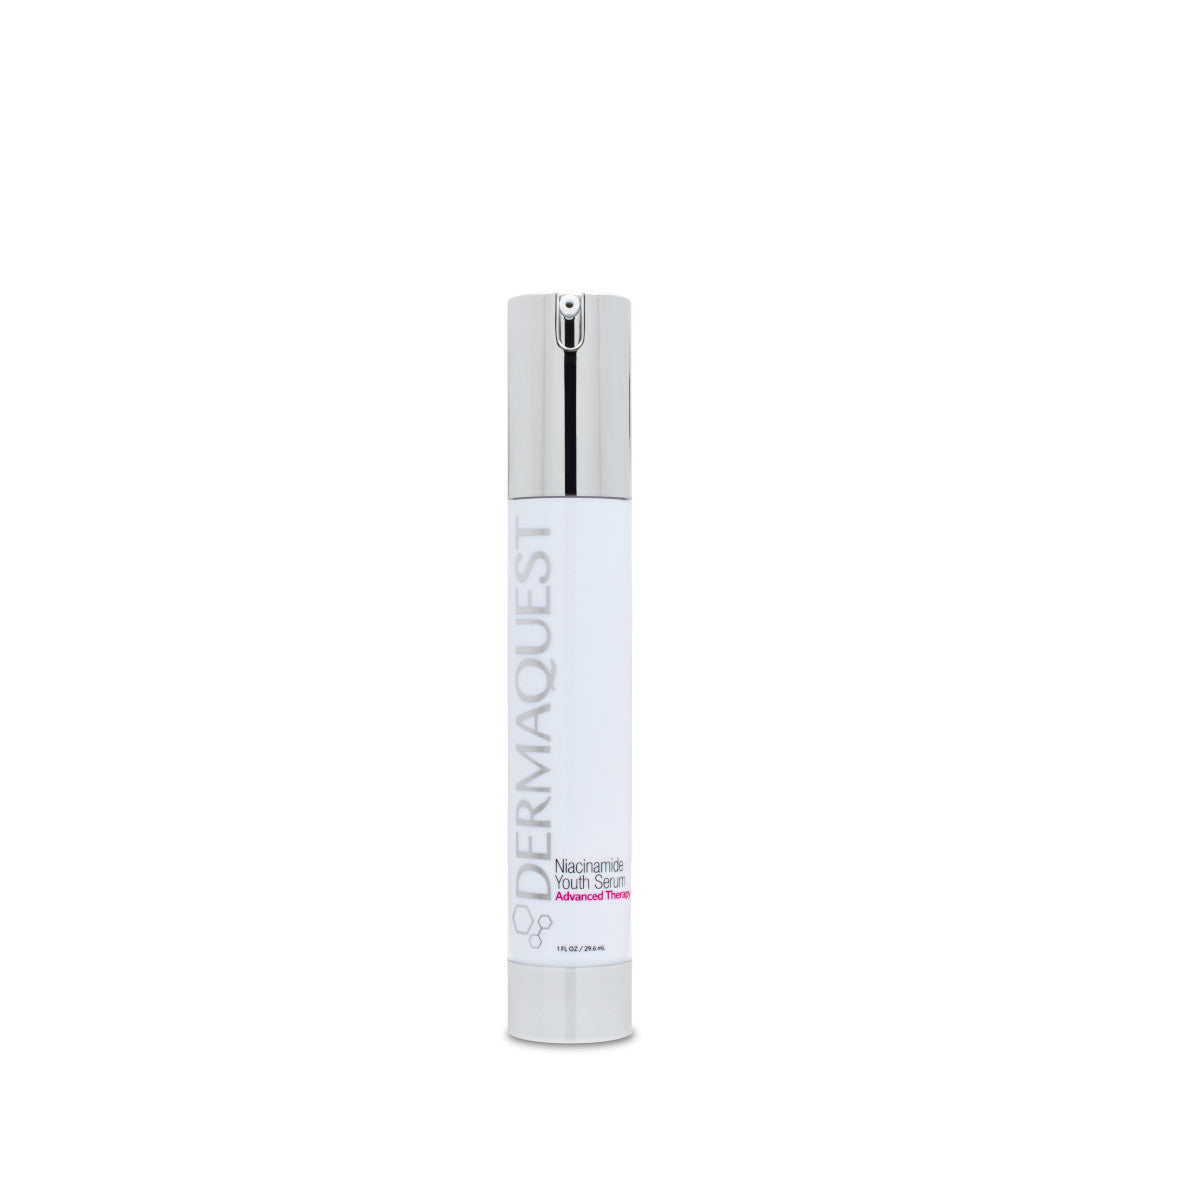 Dermaquest Advanced Niacinamide B3 Youth Serum